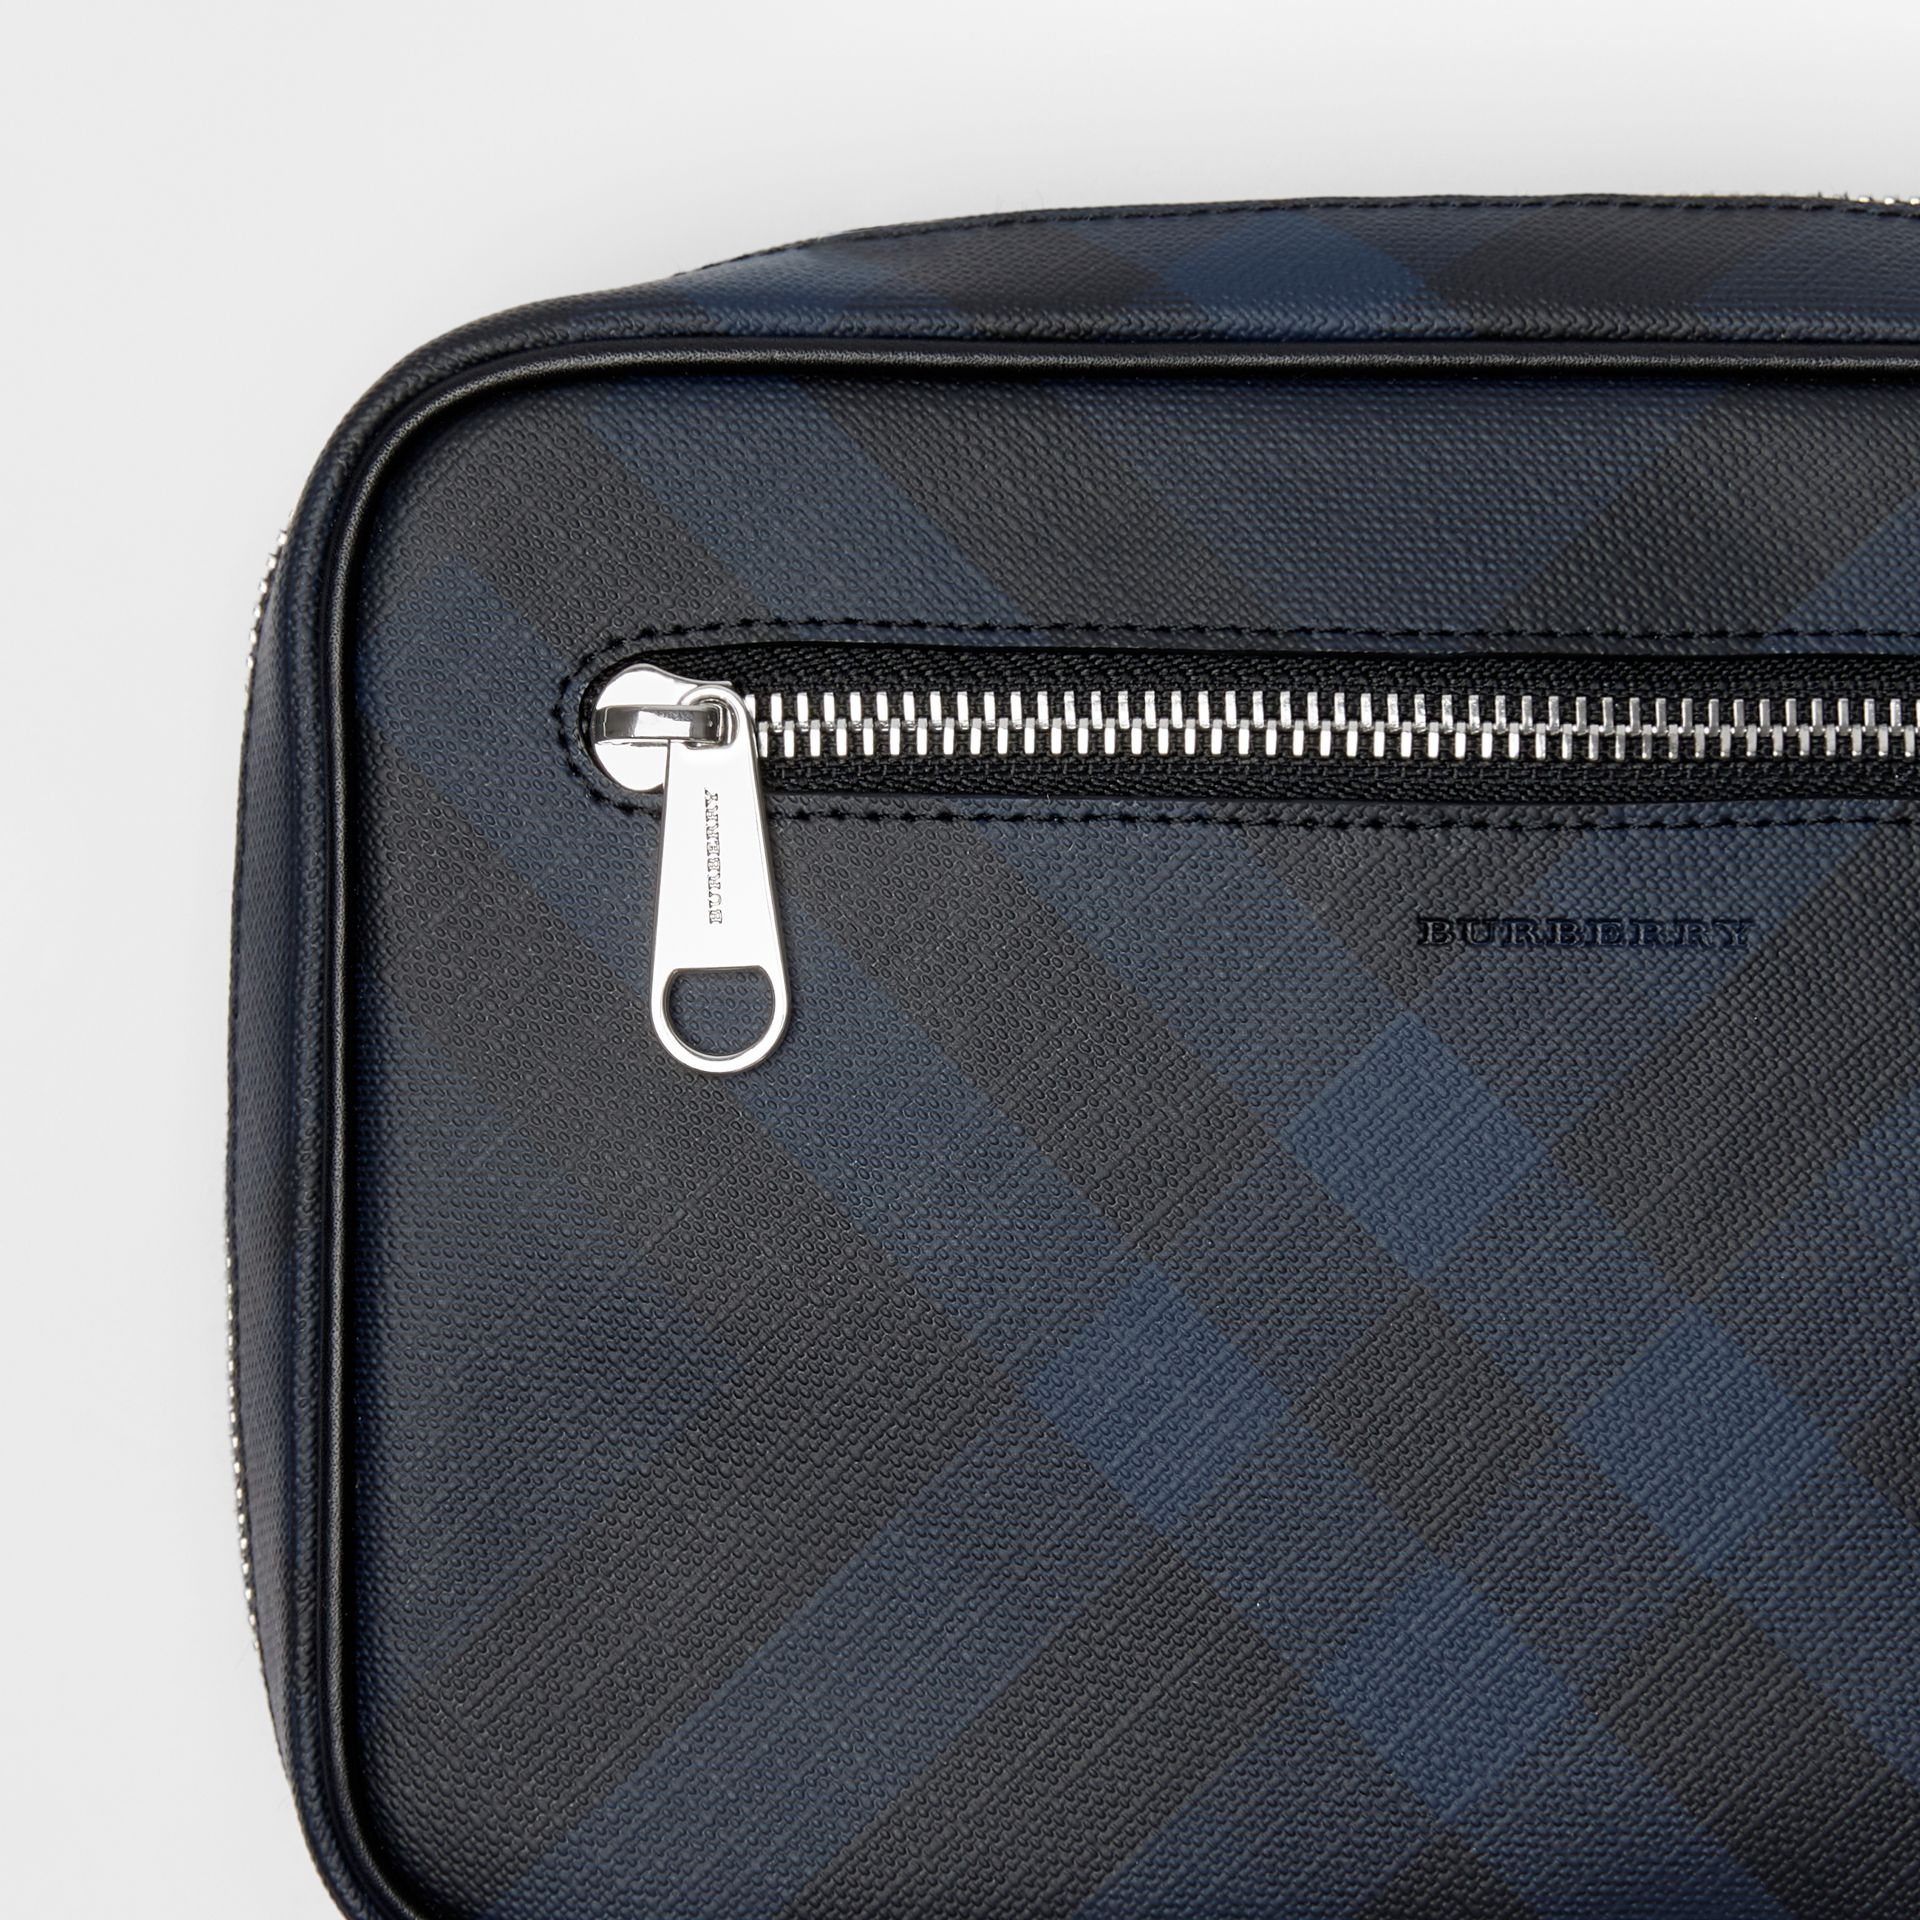 London Check Travel Pouch in Navy/black - Men | Burberry Canada - gallery image 1